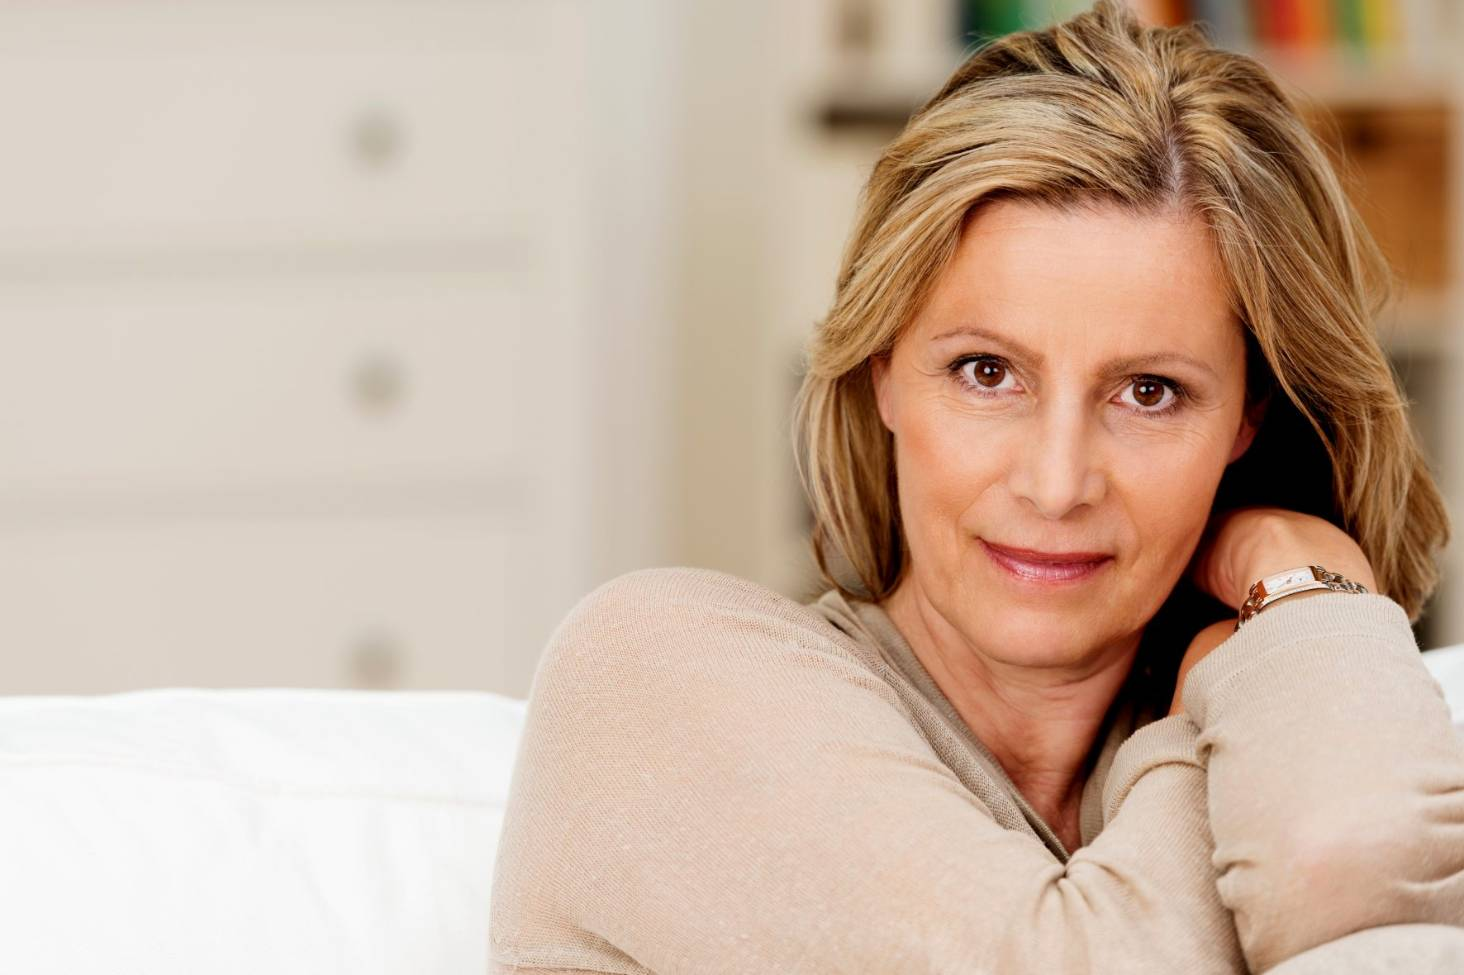 Why menopausal women need HRT, not anti-depressants | Stuff